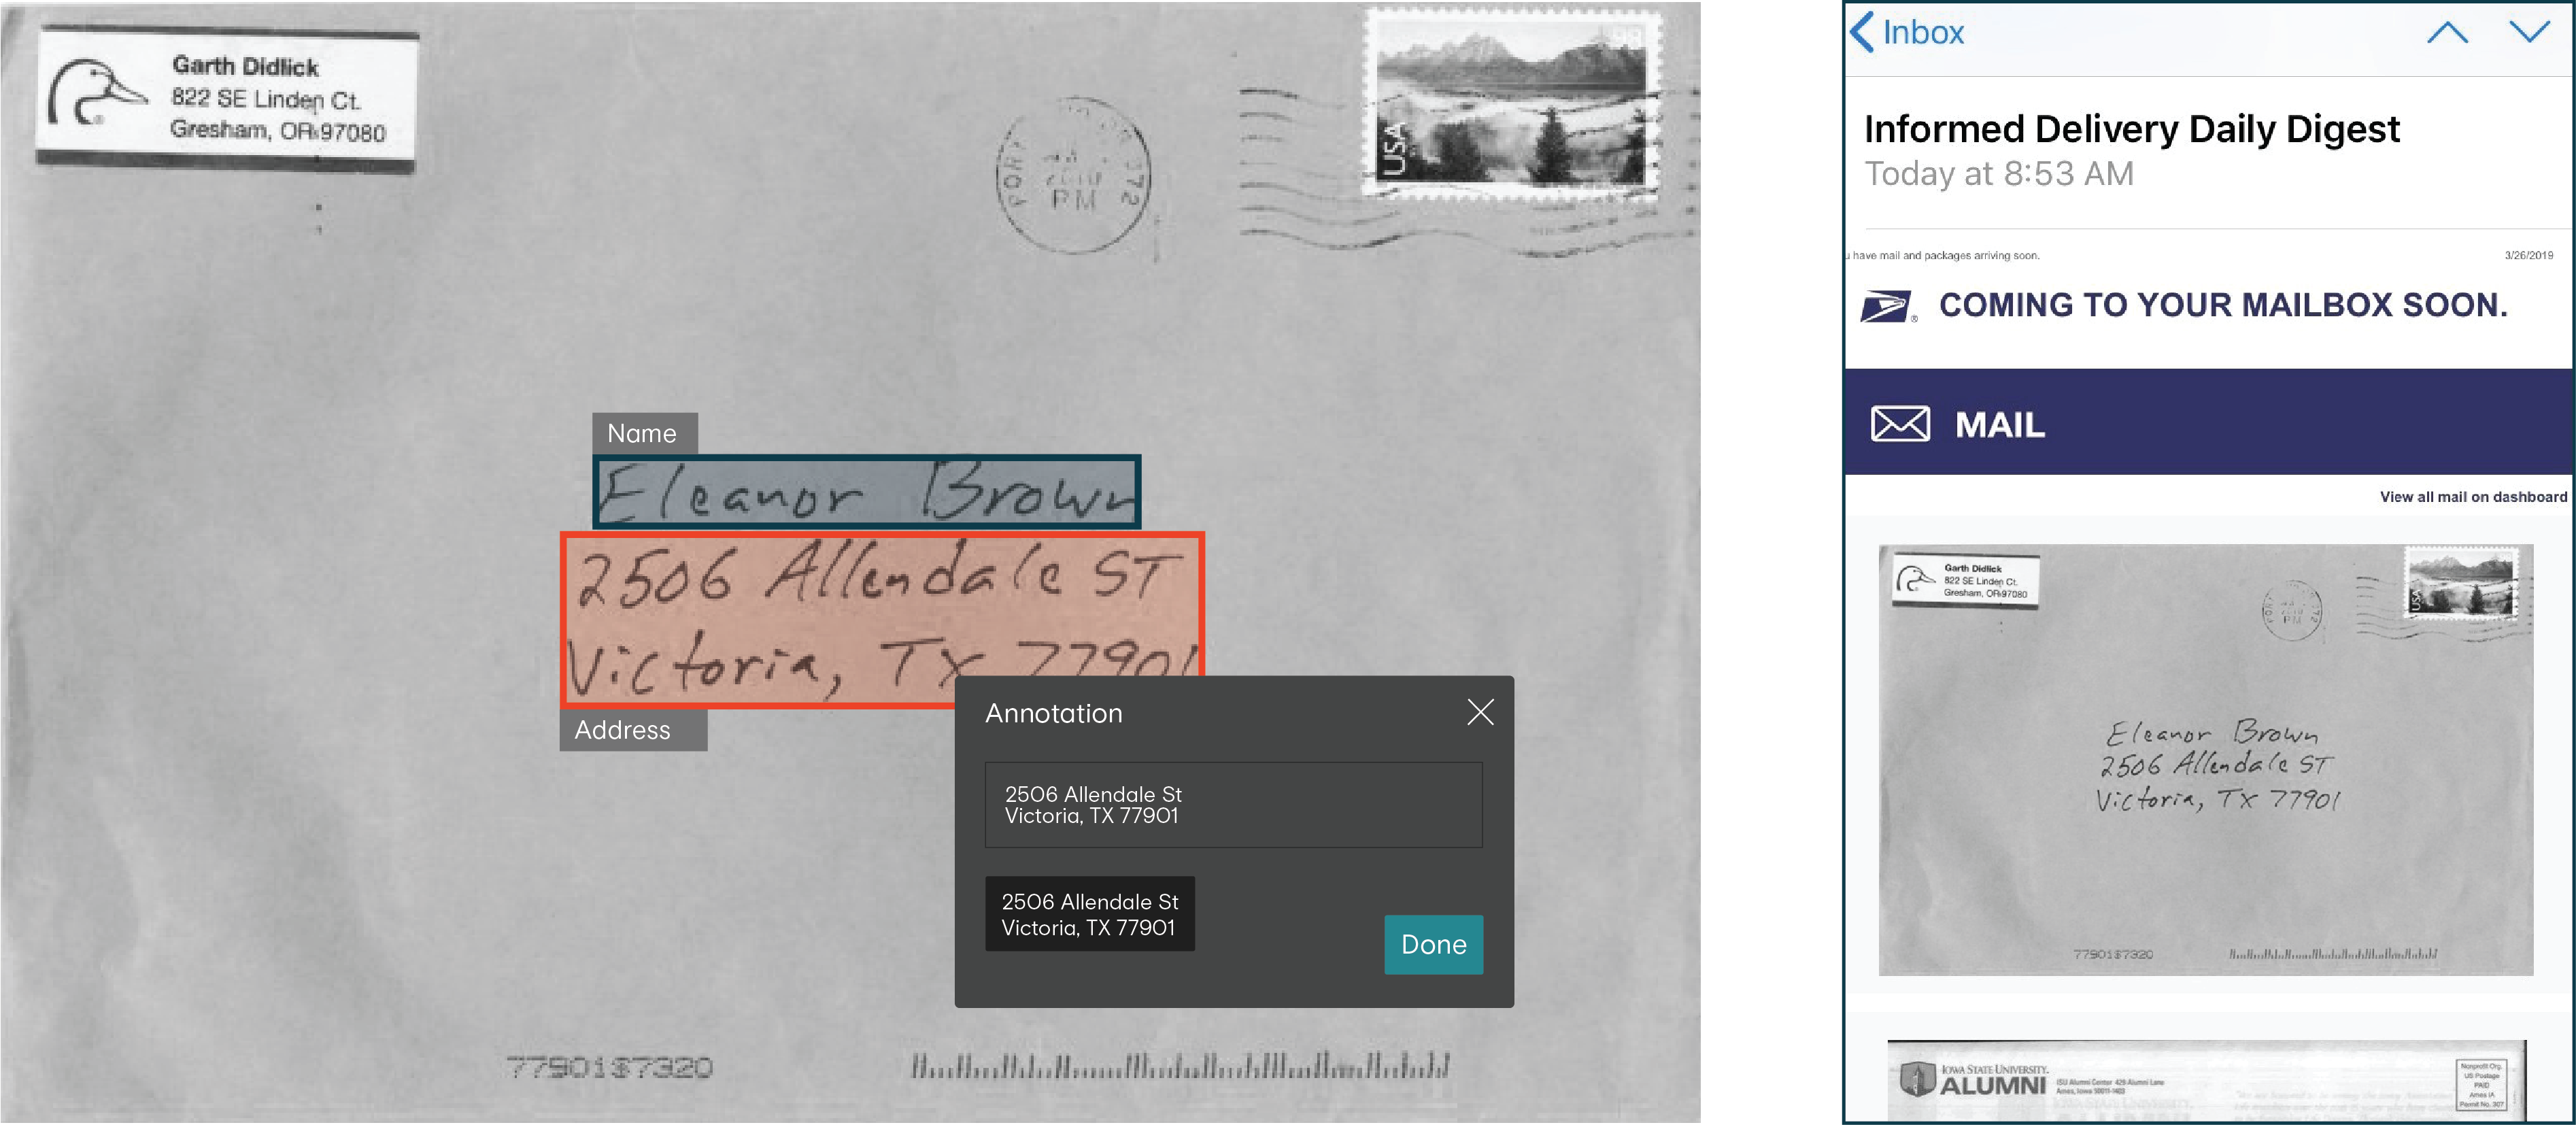 Left: Image of envelope address translated to text data. Right: USPS informed delivery email with image of the envelope.